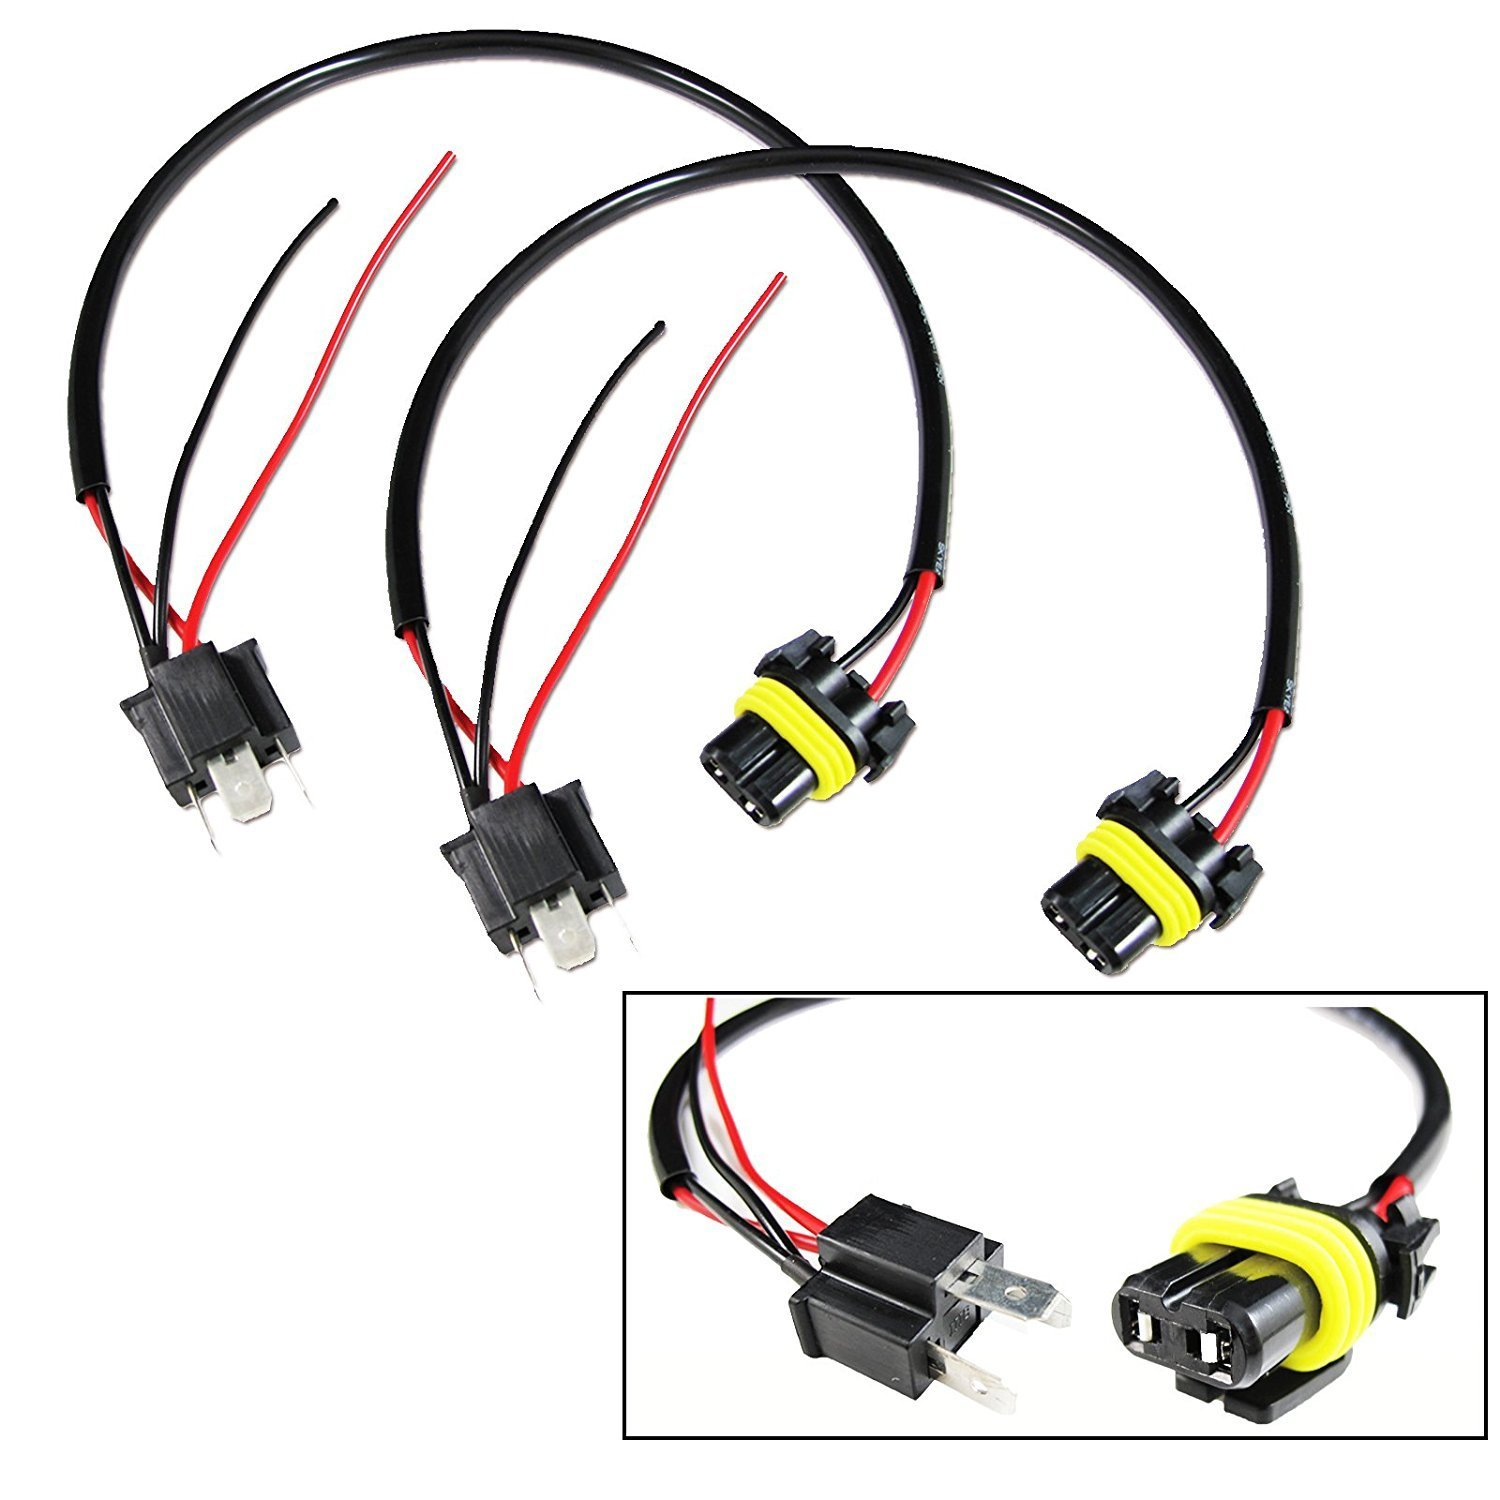 amazon com: 9006 to h4 conversion wires adapters headlight retrofit or hid  kit installation: automotive